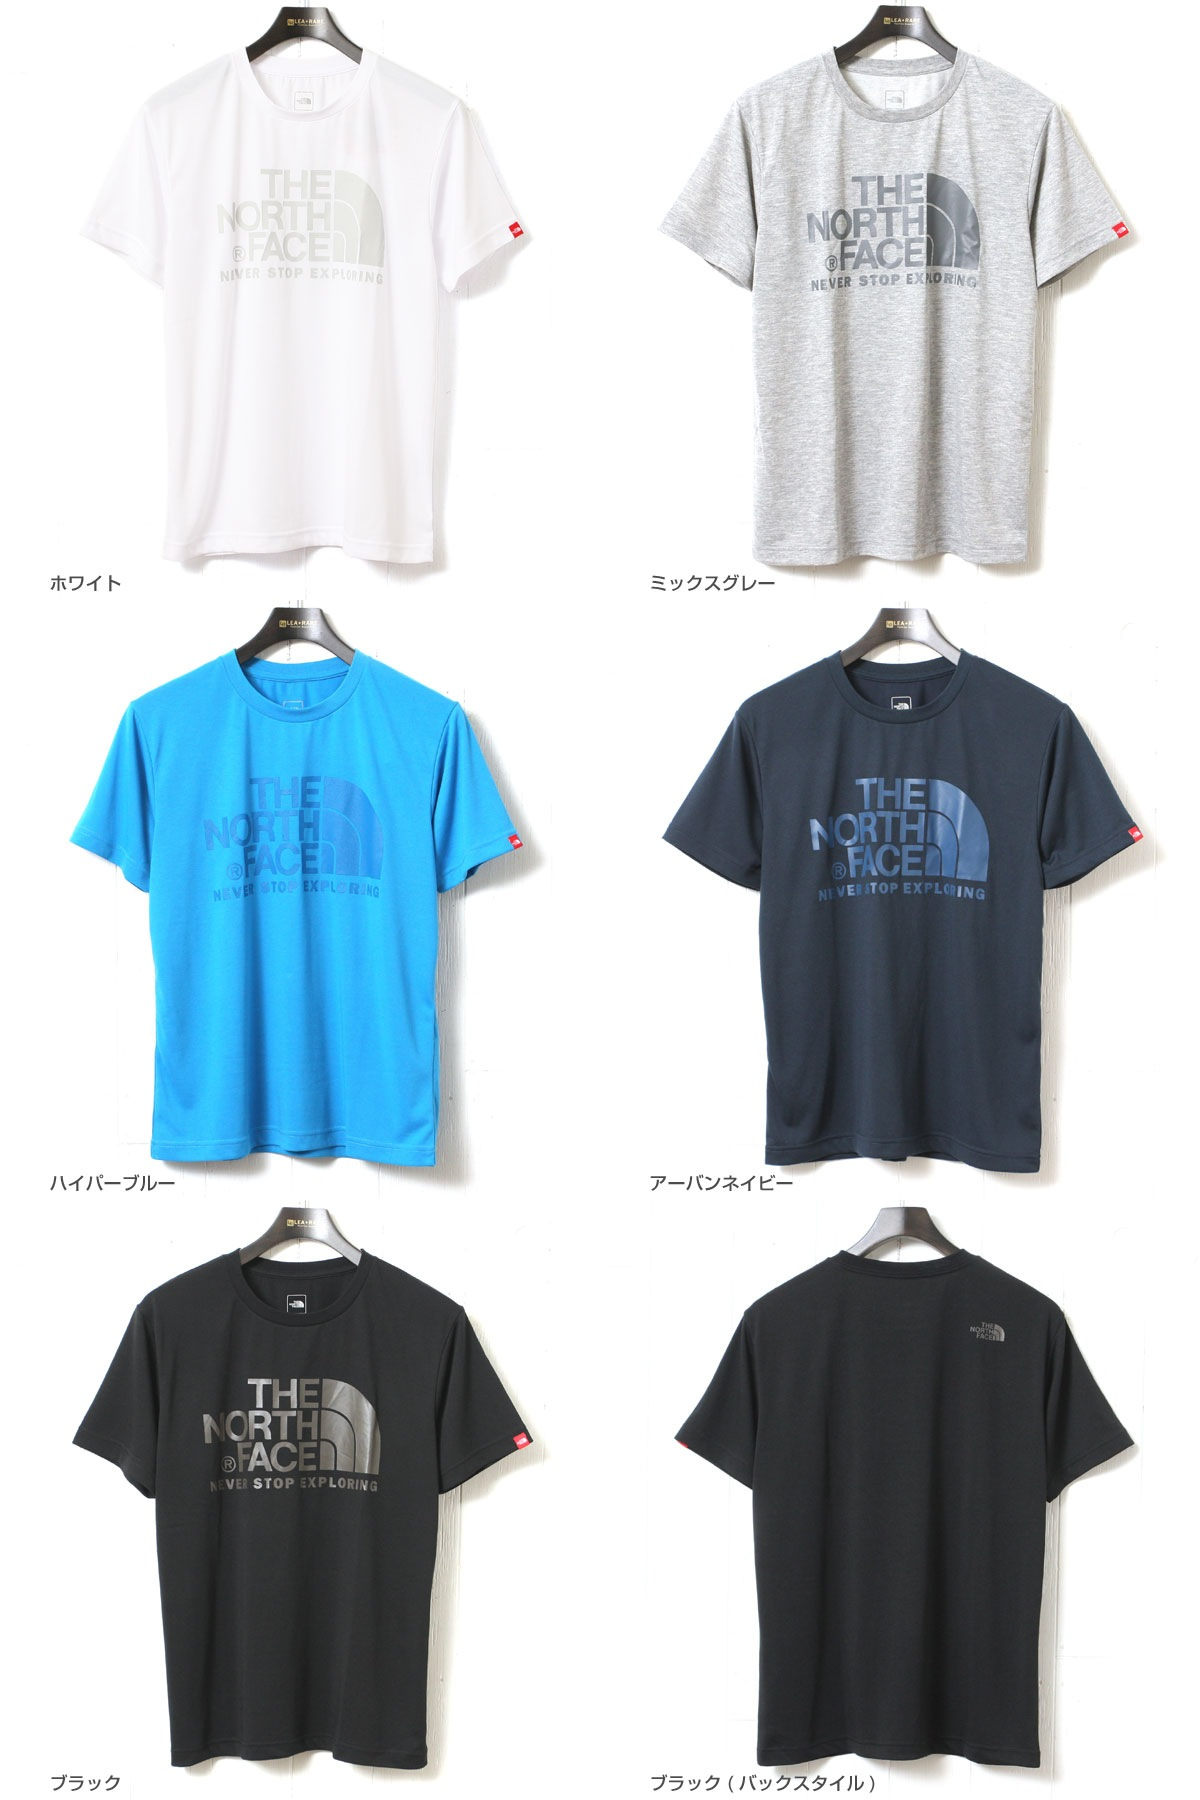 THE NORTH FACE ザ ノースフェイス S/S COLOR DOME TEE カラードーム半袖Tシャツ NT31620